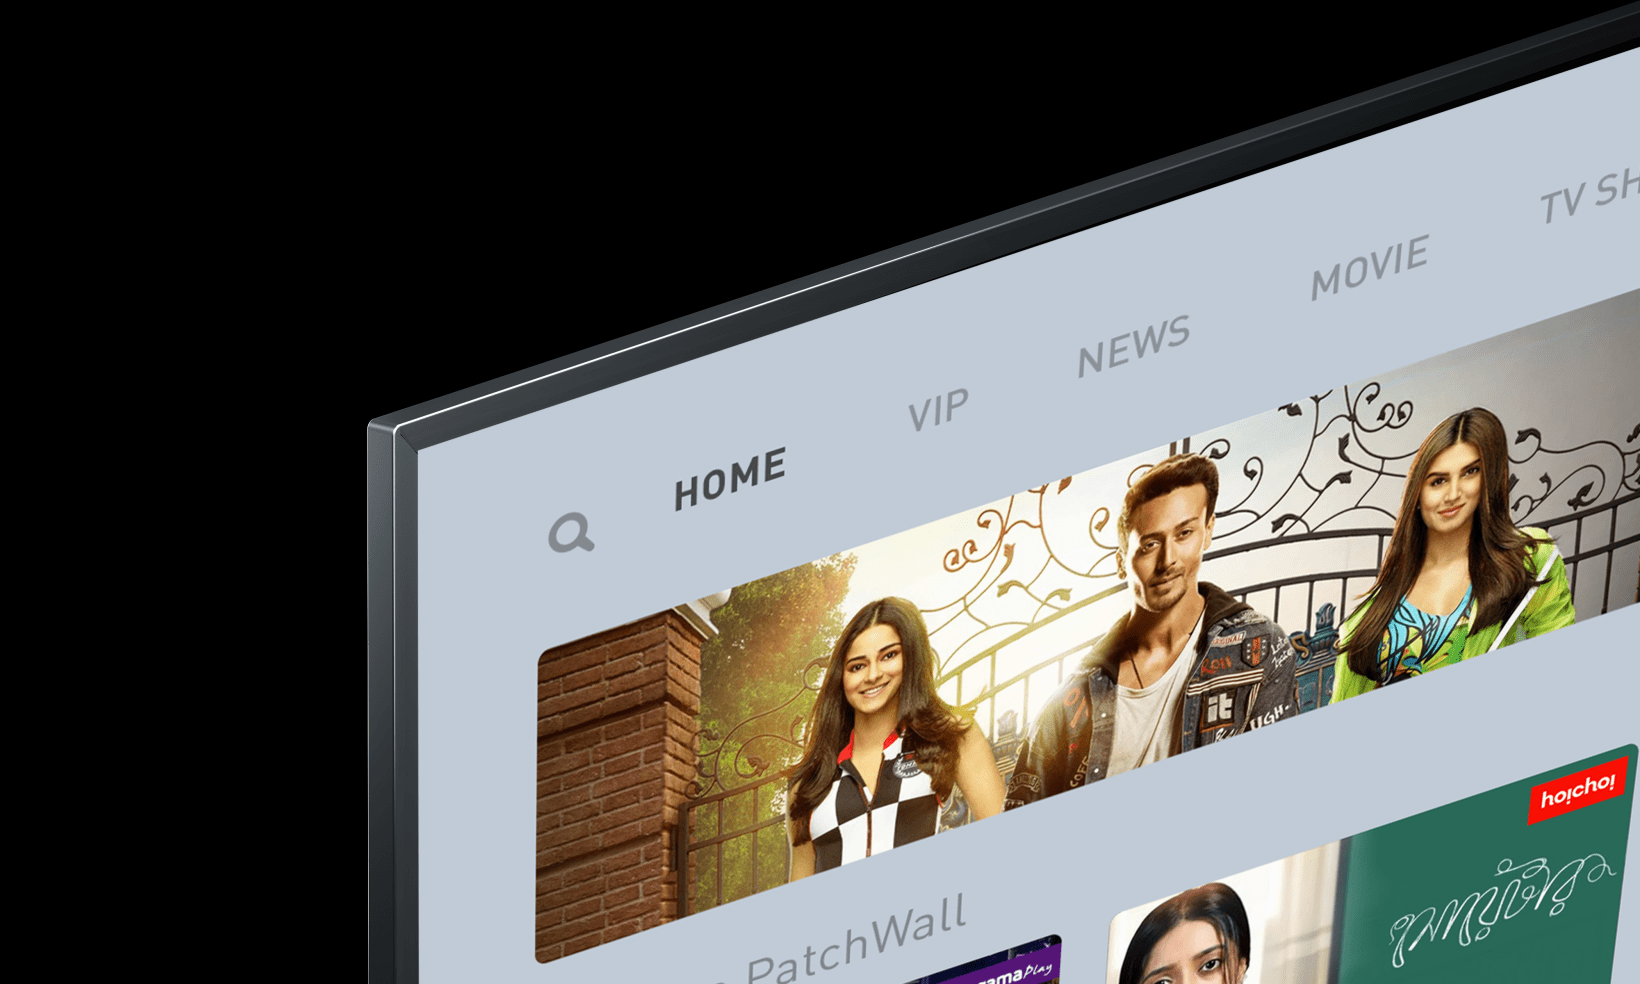 The Mi TV 4X 65-inch features slim bezels measuring just over 1 cm in thickness